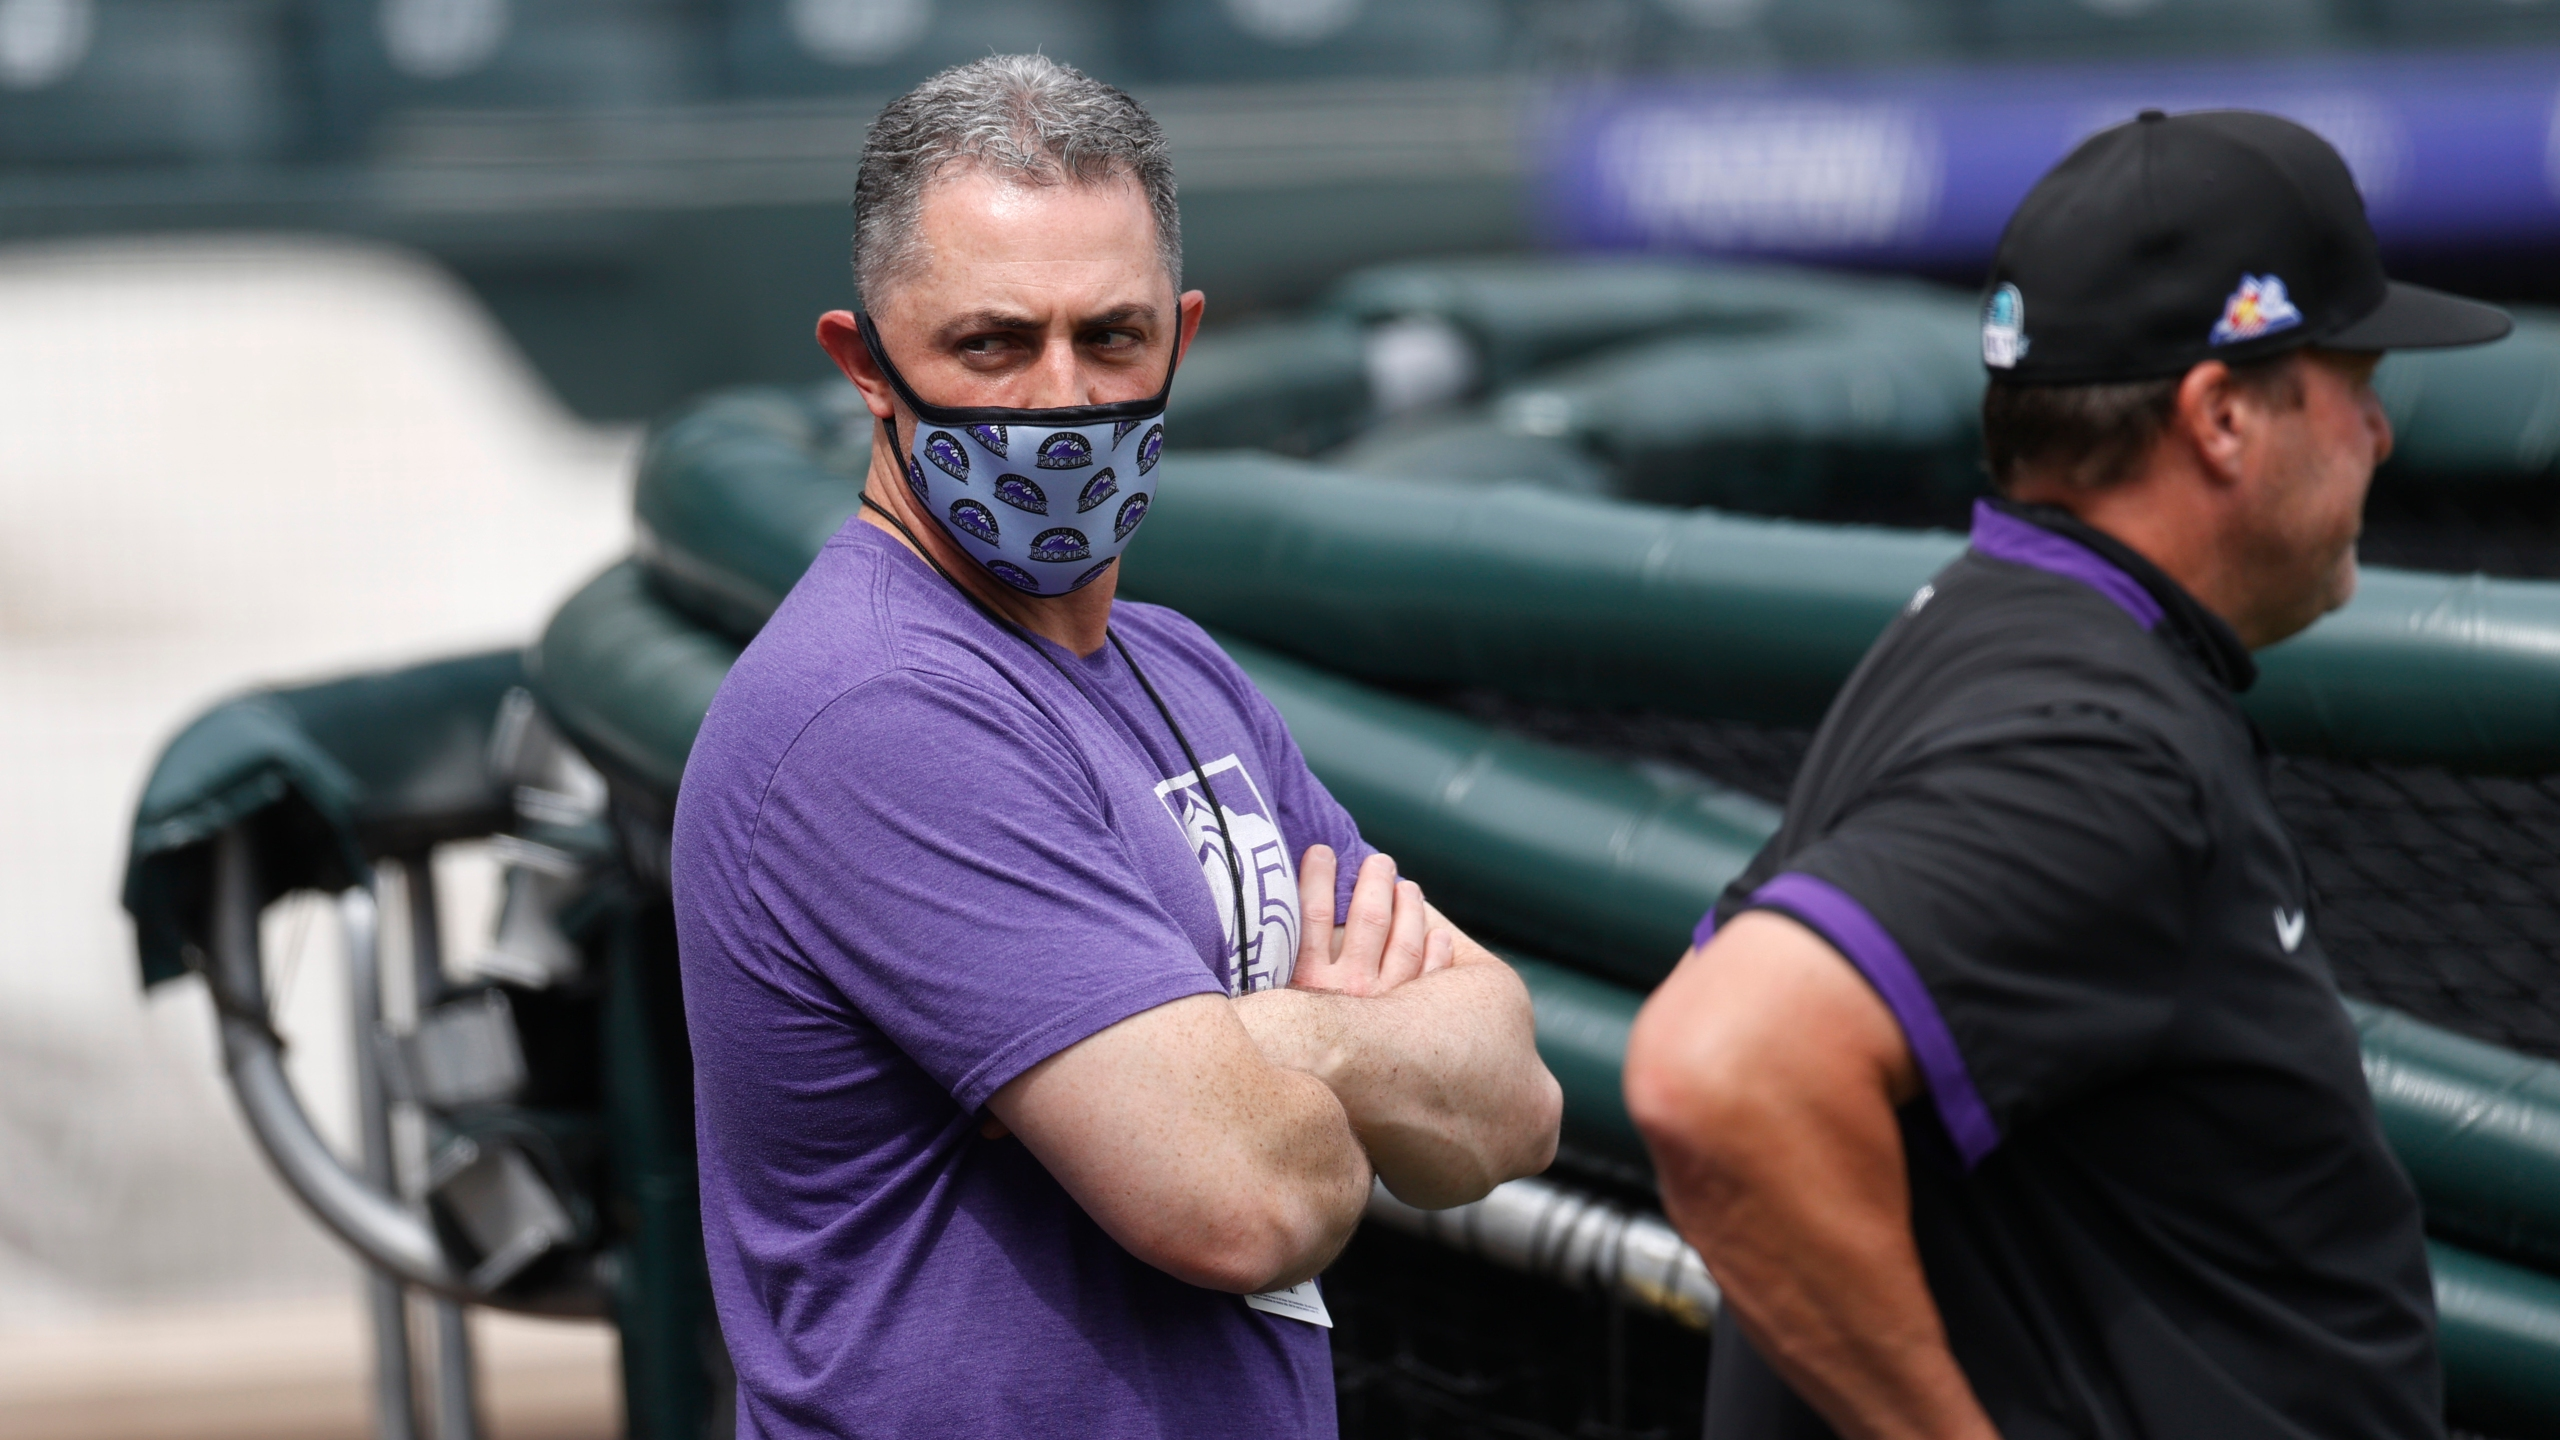 Colorado Rockies general manager Jeff Bridich looks on as players warm up as the team practices in Coors Field Saturday, July 4, 2020, in Denver. (AP Photo/David Zalubowski)